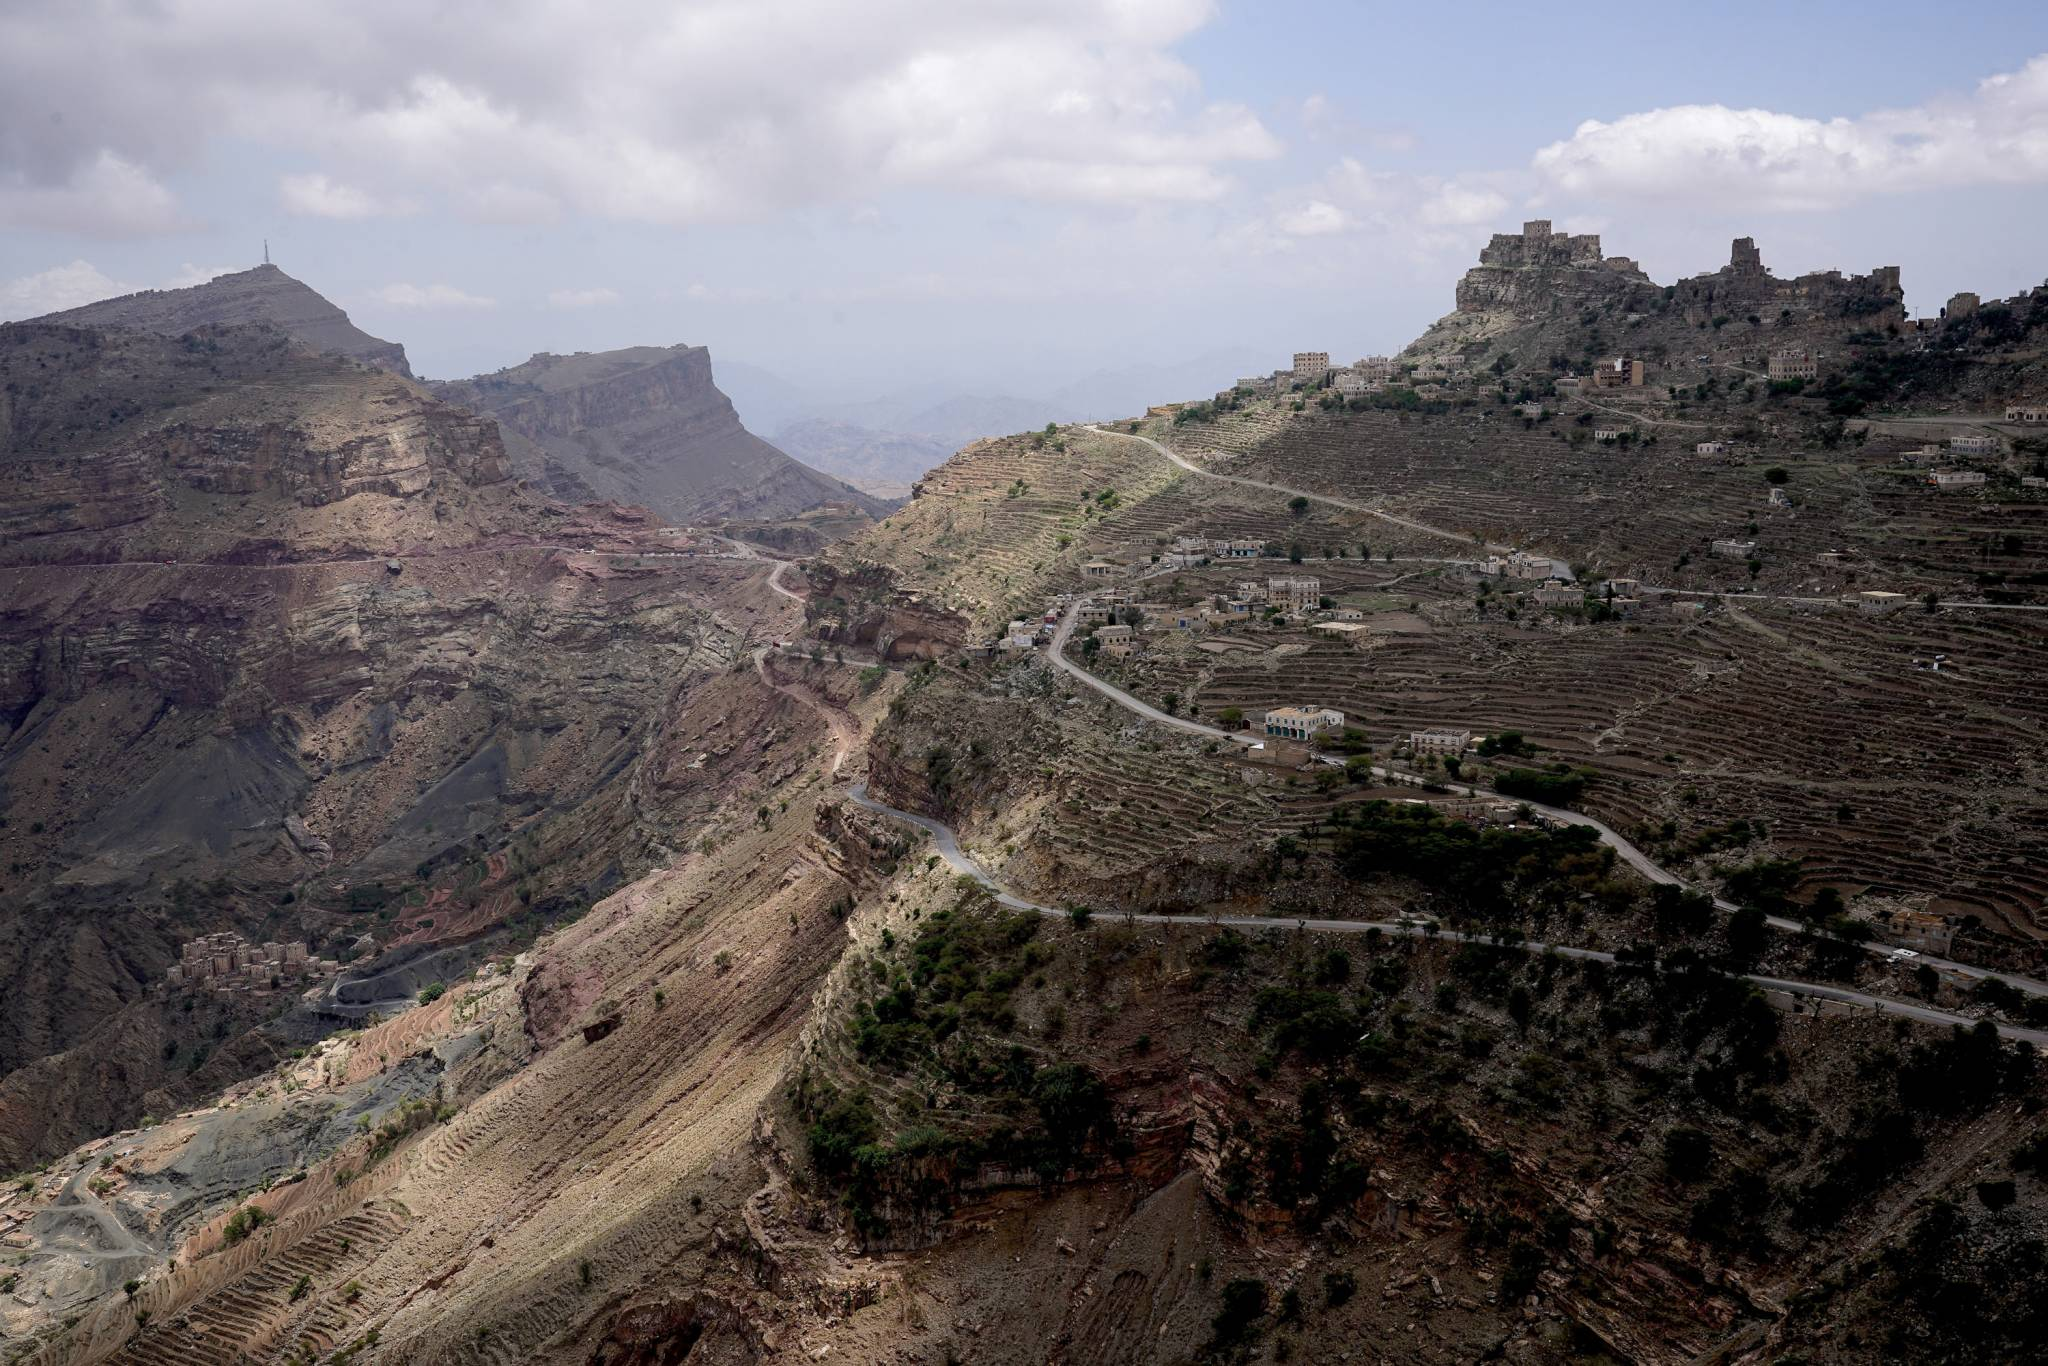 THE ROAD TO HAJJA, YEMEN - 3 MAY 2017.